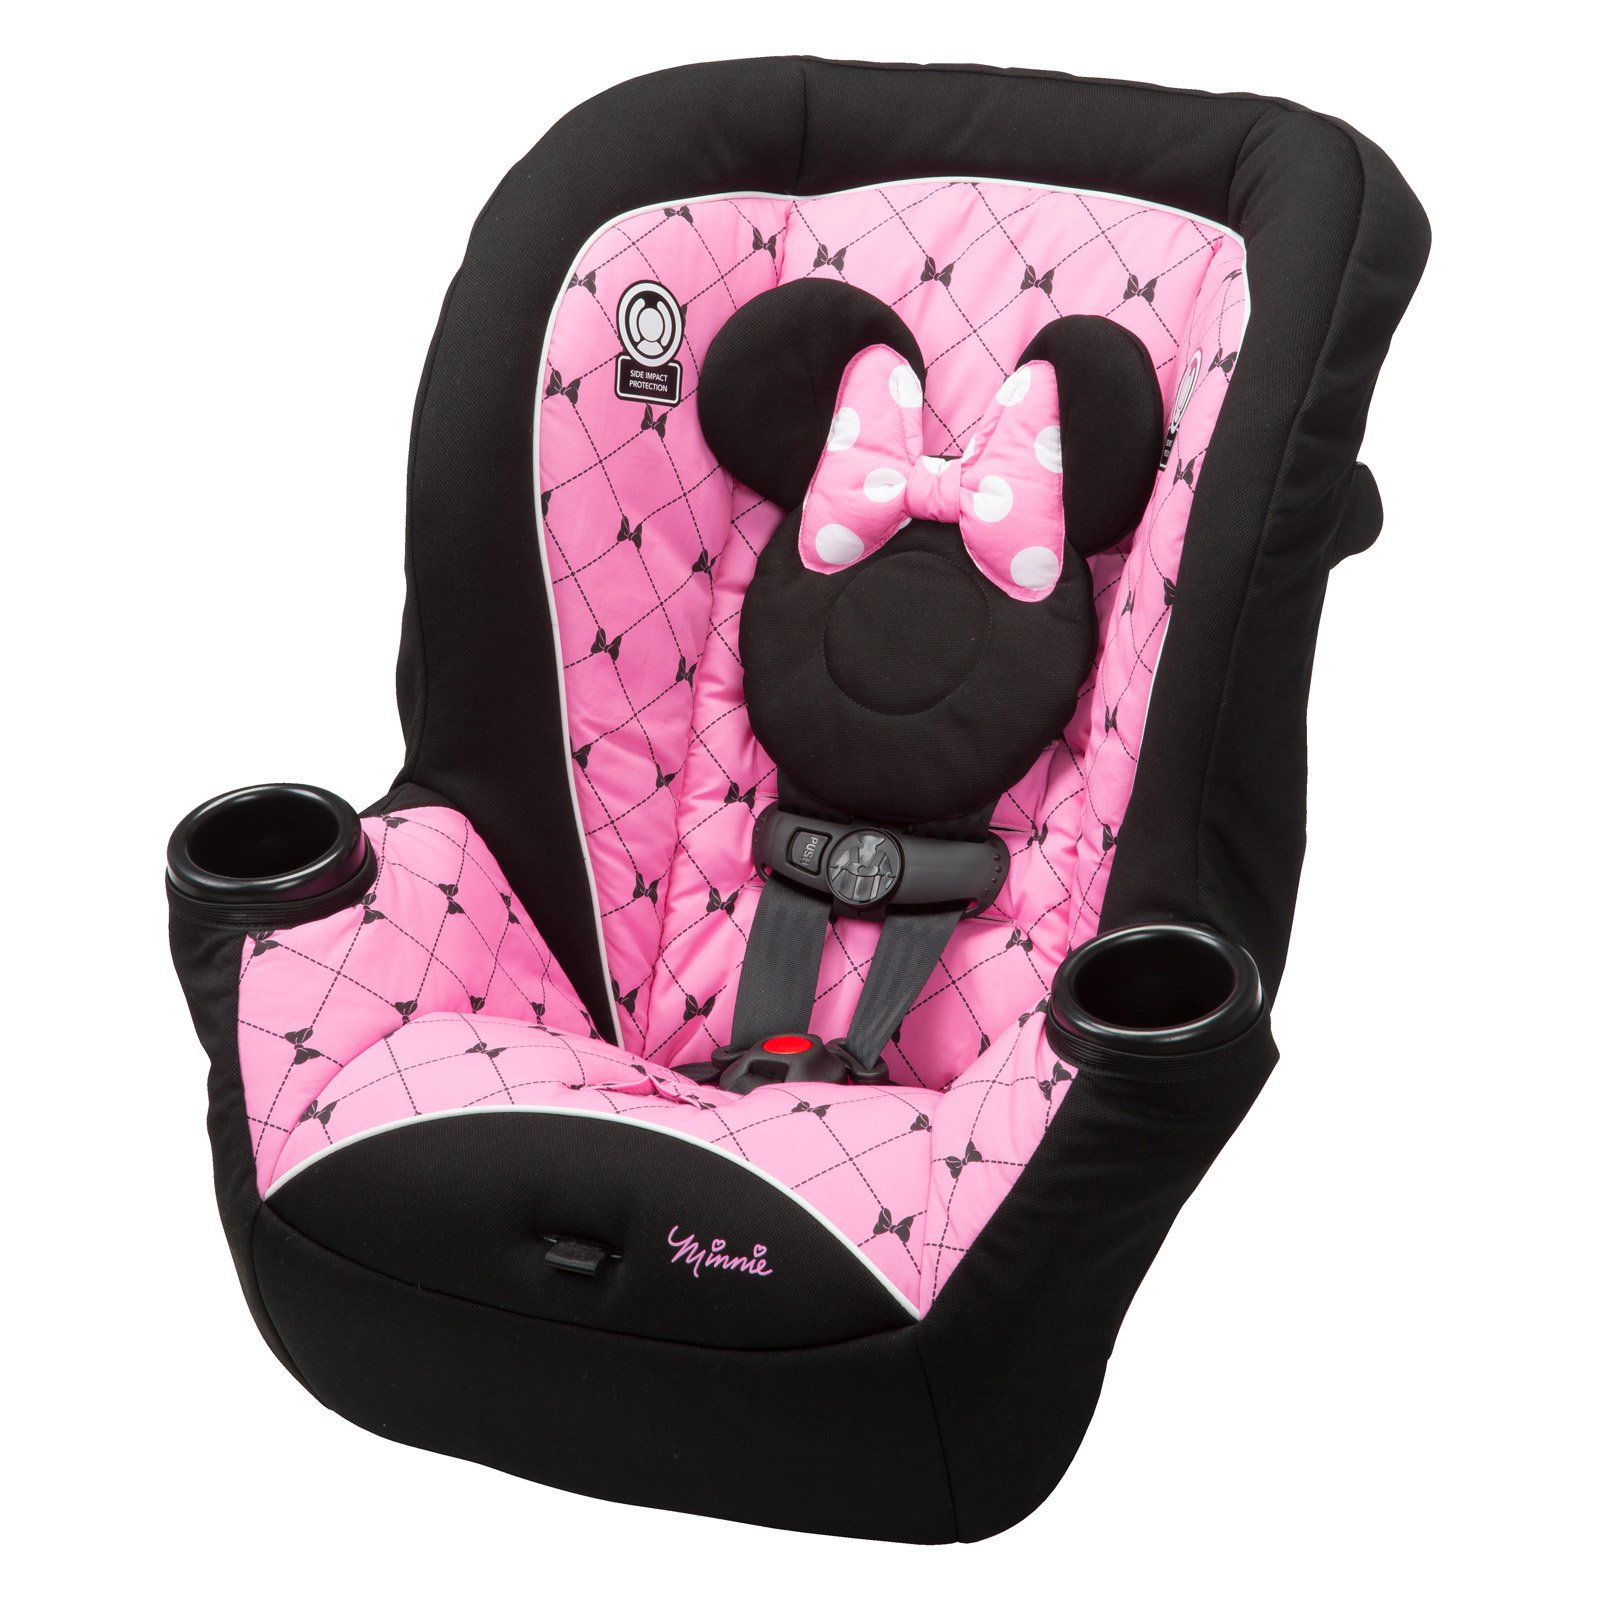 Disney Baby Apt 40 Convertible Car Seat - Kriss Kross Minnie